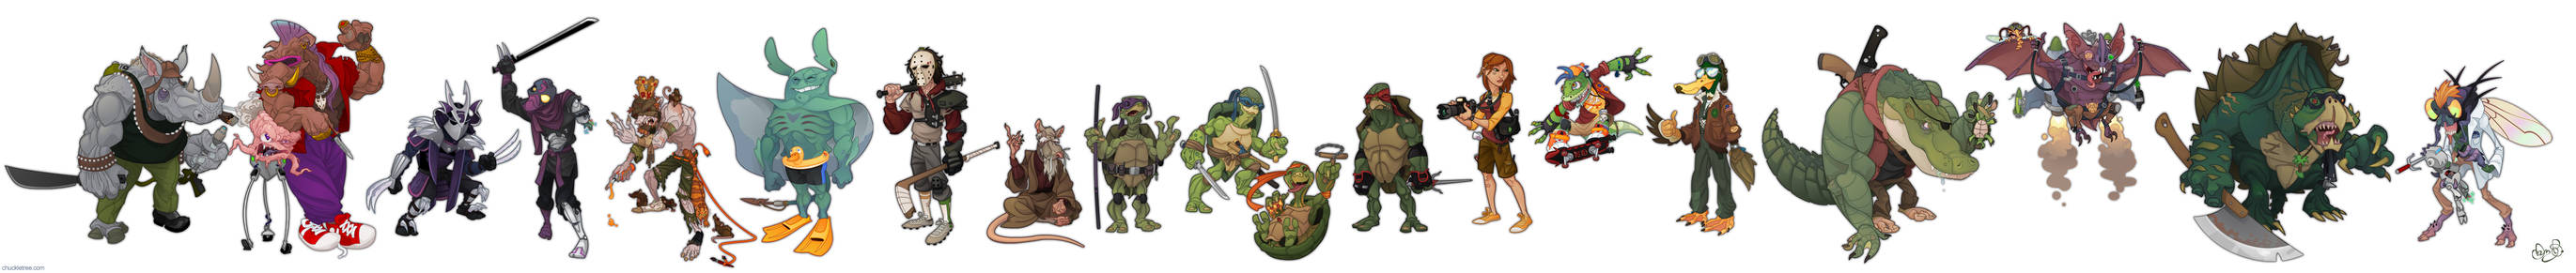 Turtles Redesign Lineup